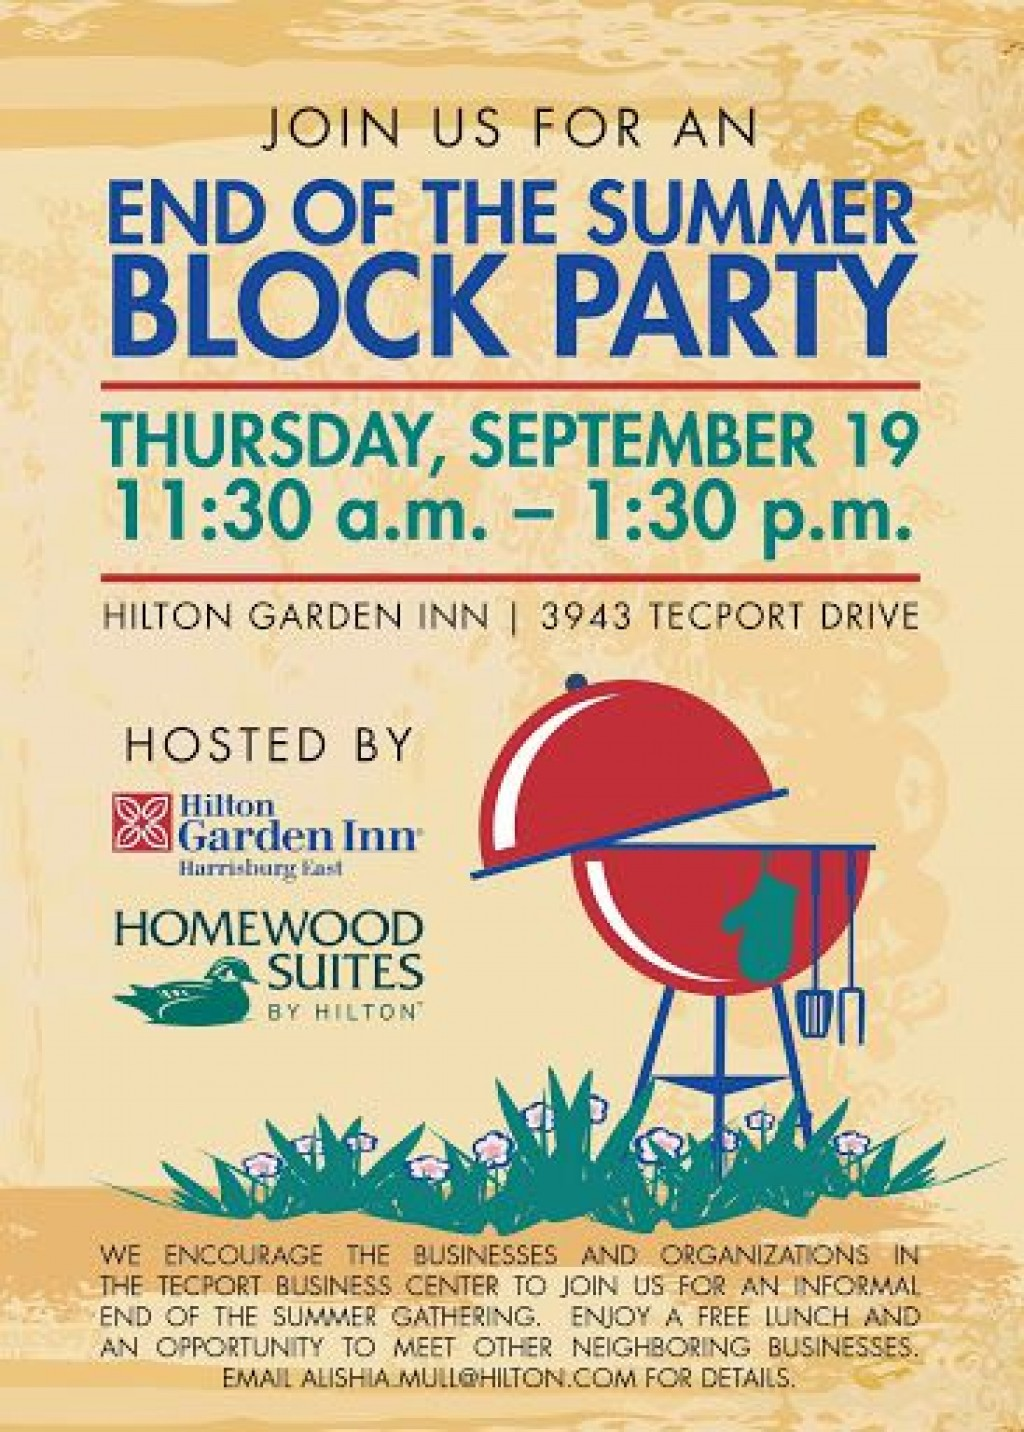 010 Wonderful Block Party Flyer Template Photo  TemplatesLarge